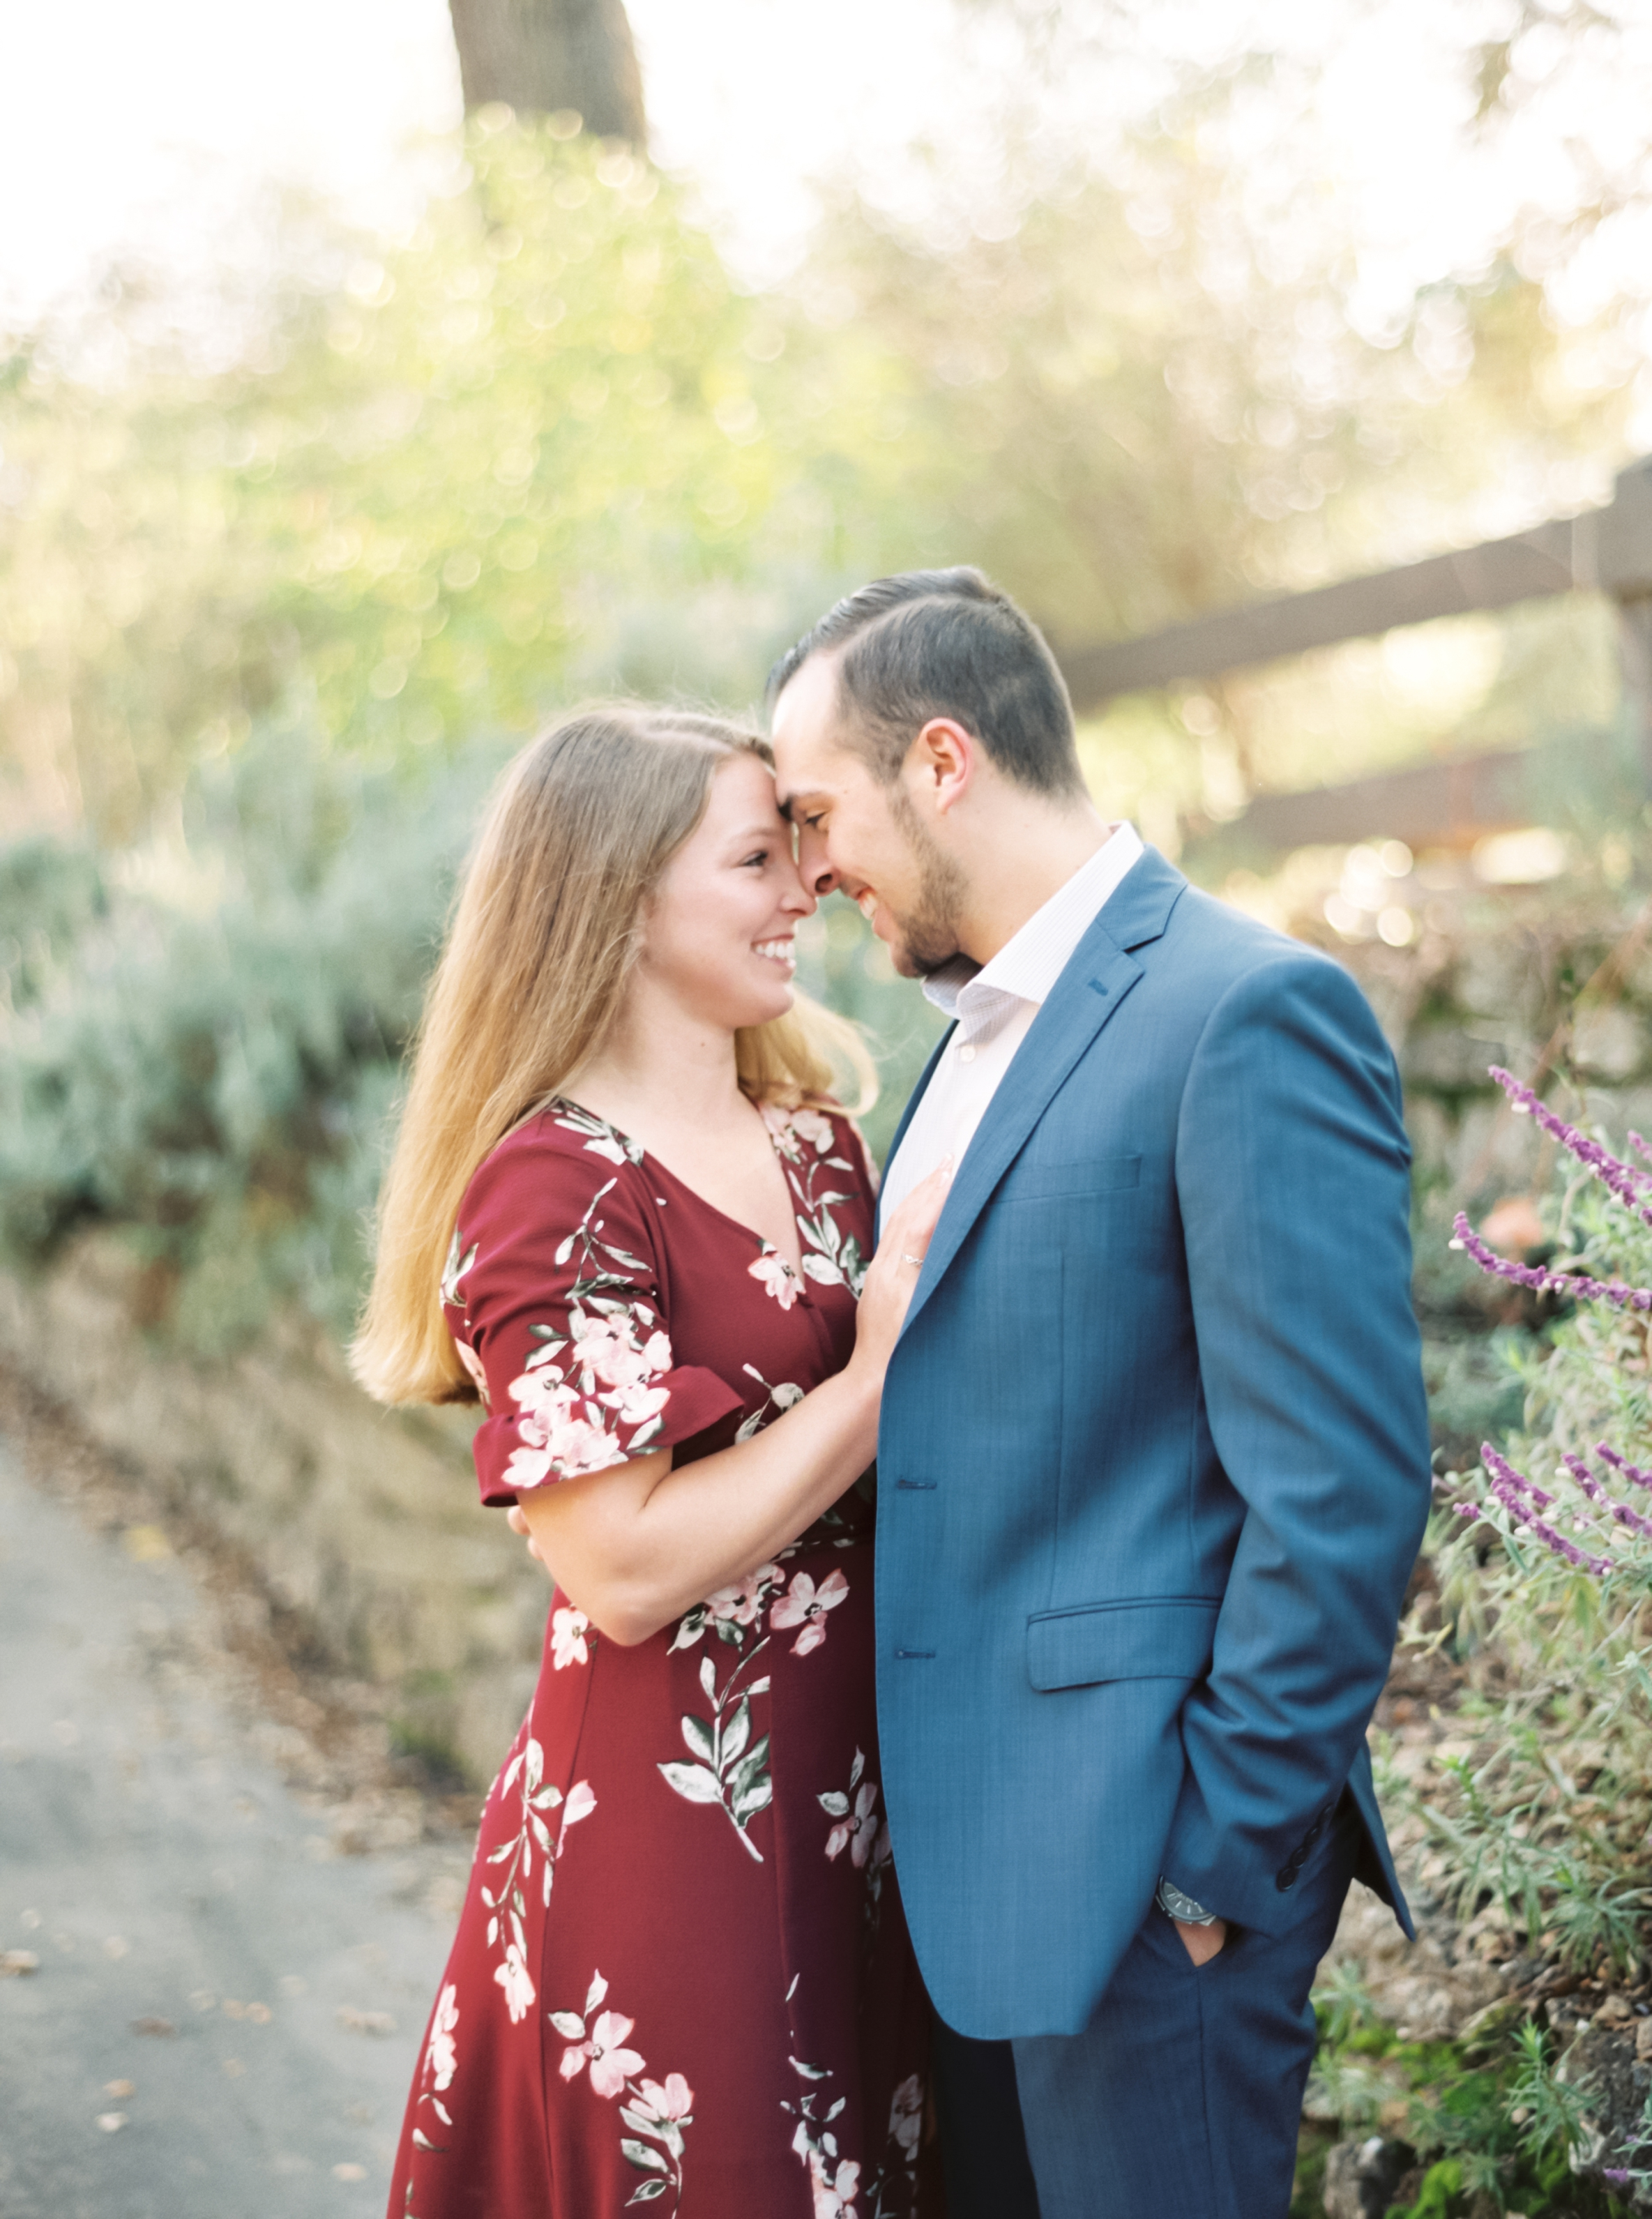 Hiking Engagement Pictures, Girl in Dress, Guy in suit